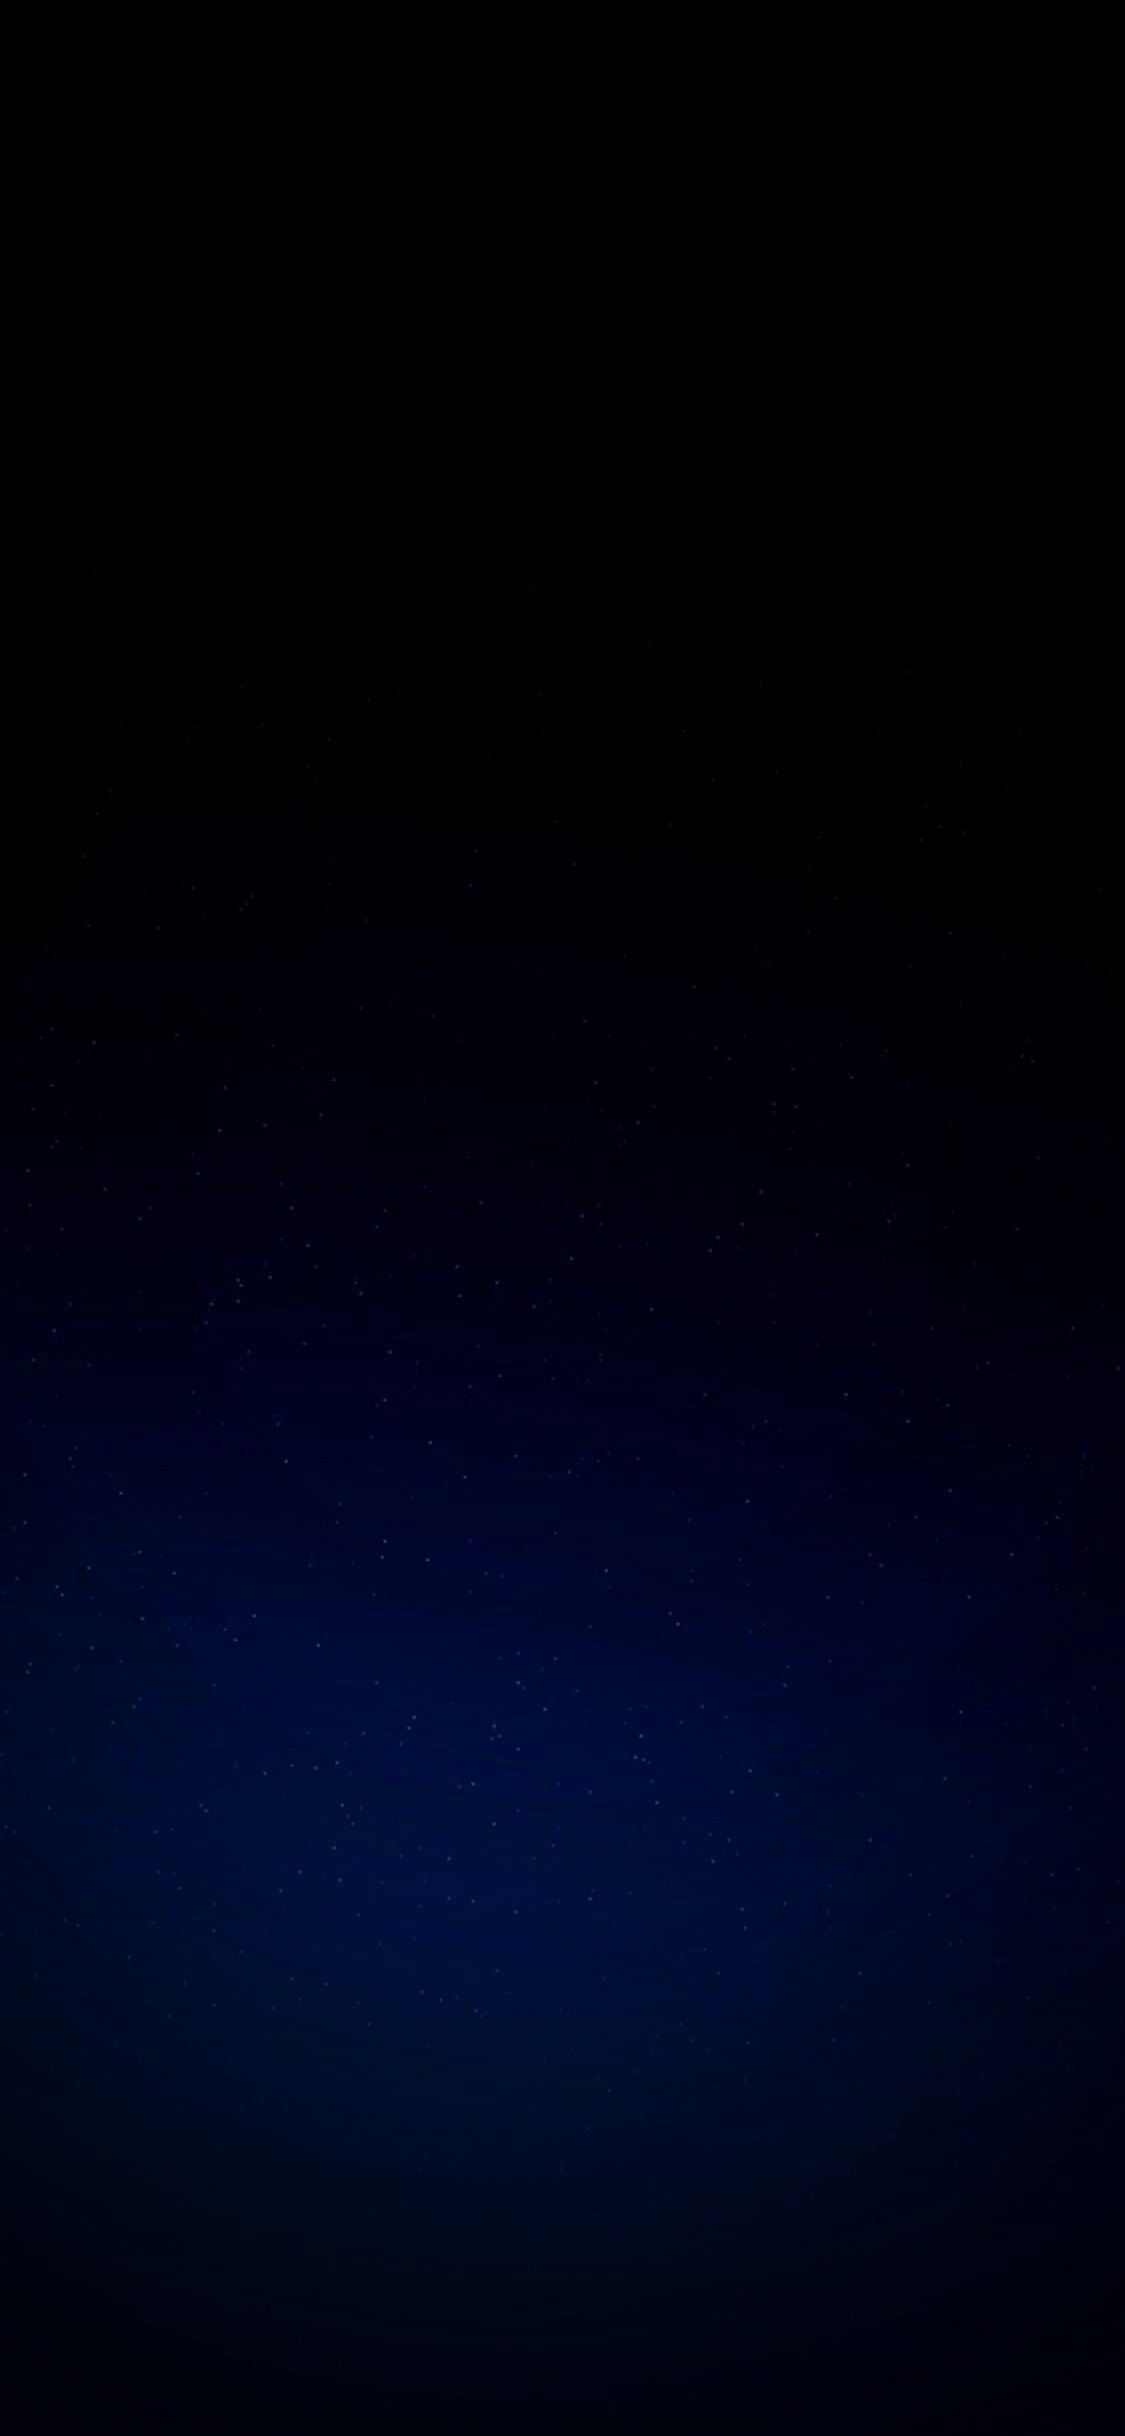 Dark Blue Phone Wallpaper Images Dark Blue Wallpaper Apple Wallpaper